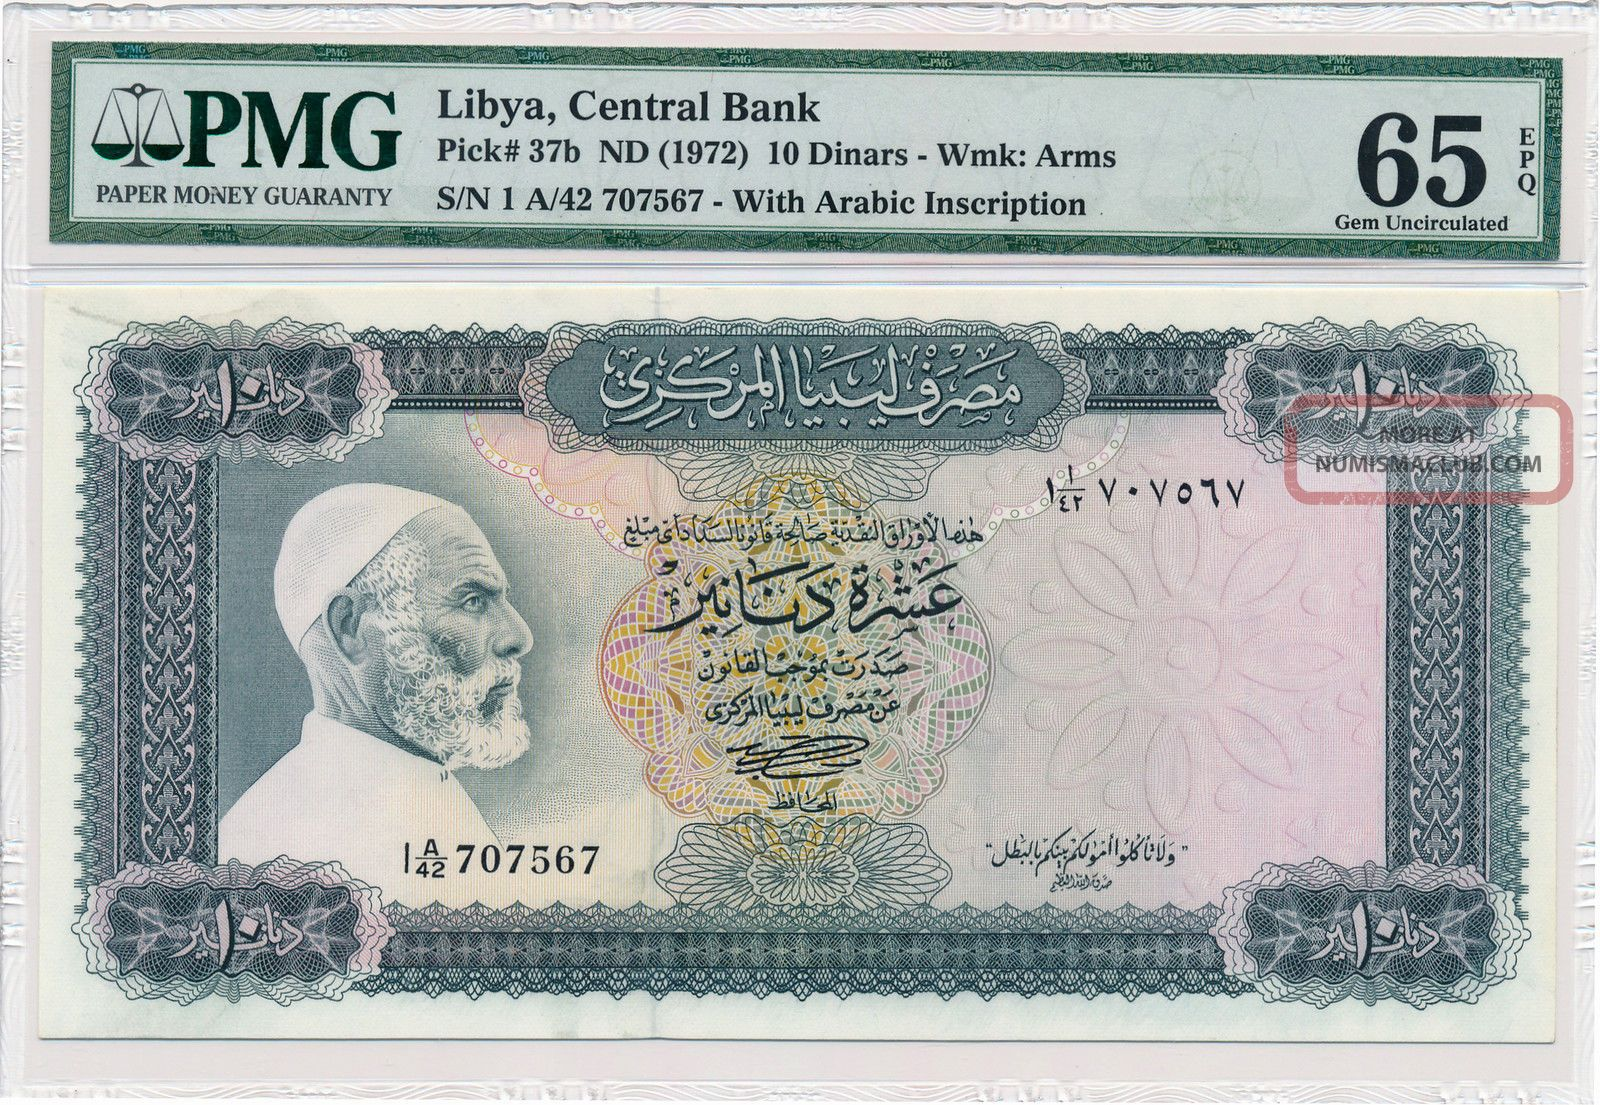 Central Bank Libya 10 Dinars Nd (1972) Pmg 65epq Africa photo